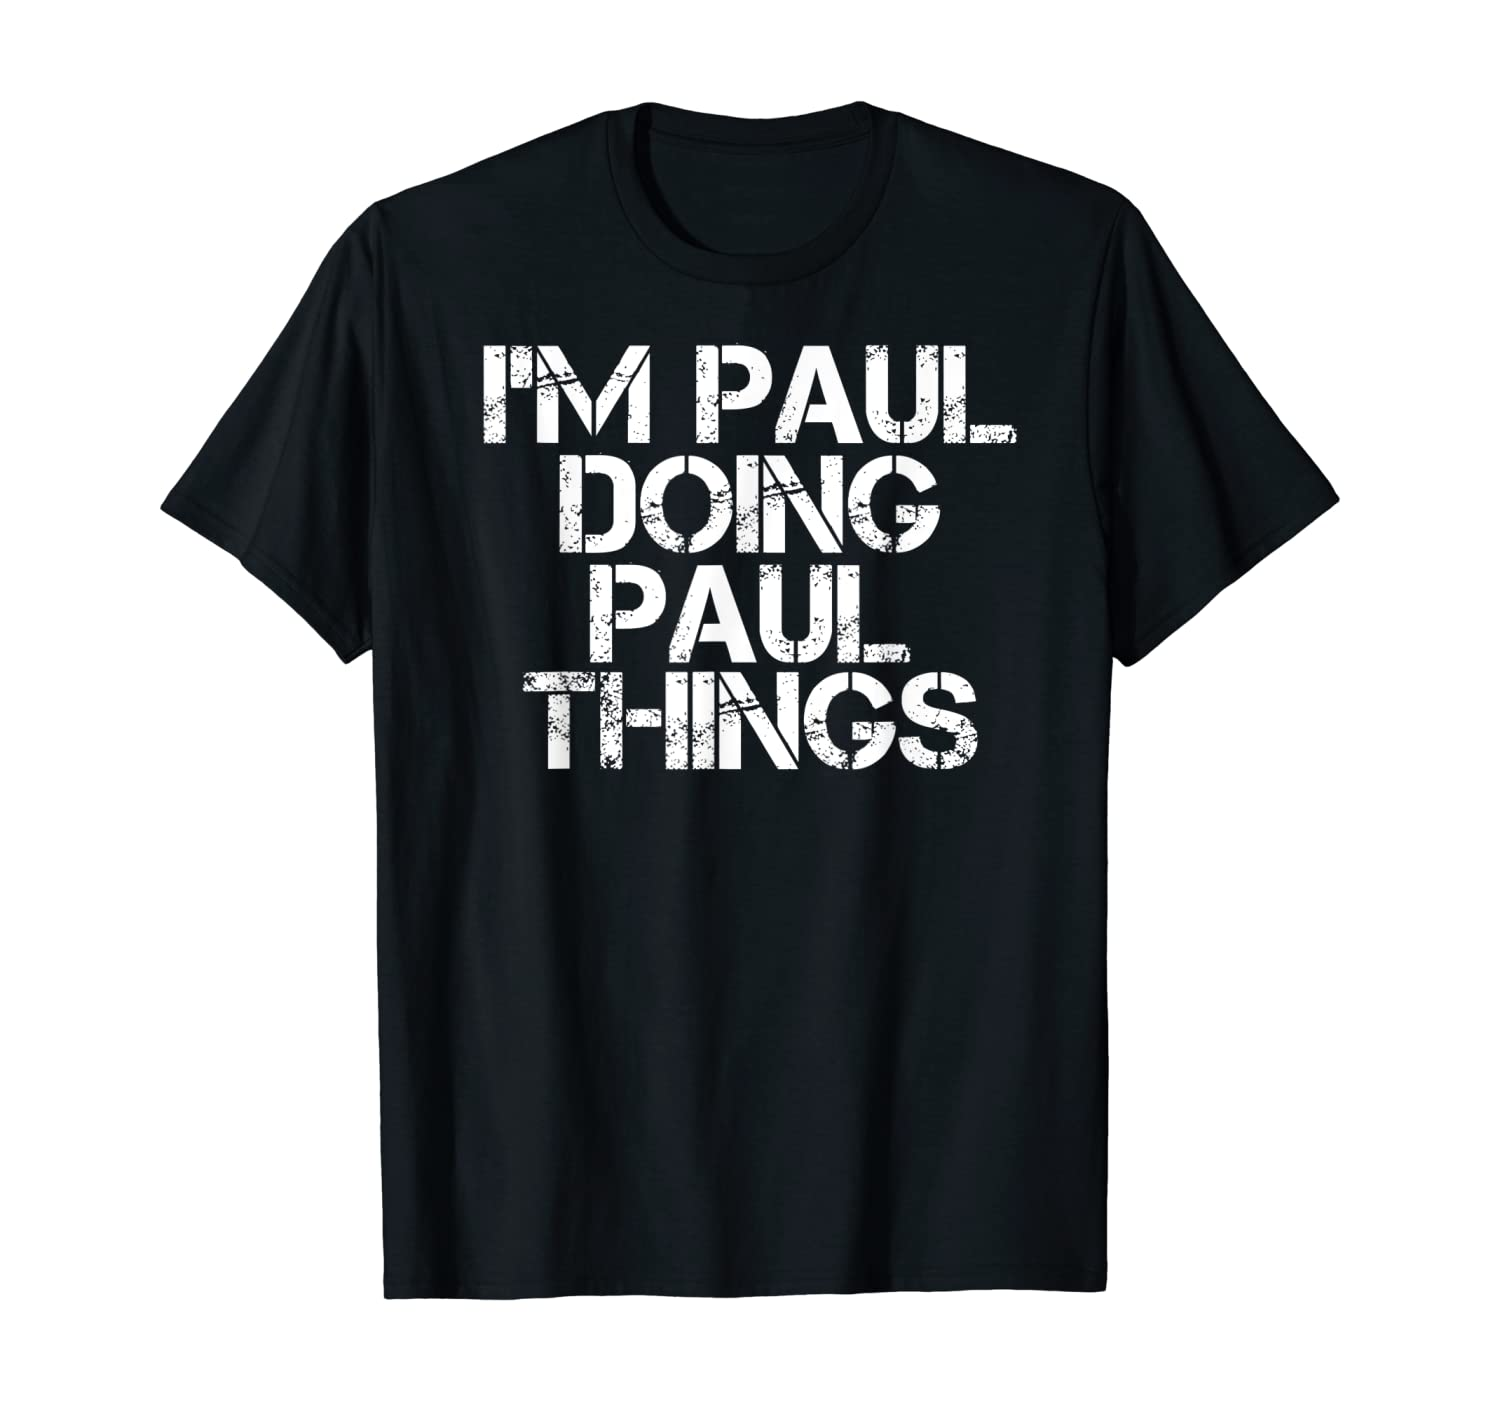 I'M PAUL DOING PAUL THINGS Funny Christmas Gift Idea T-Shirt